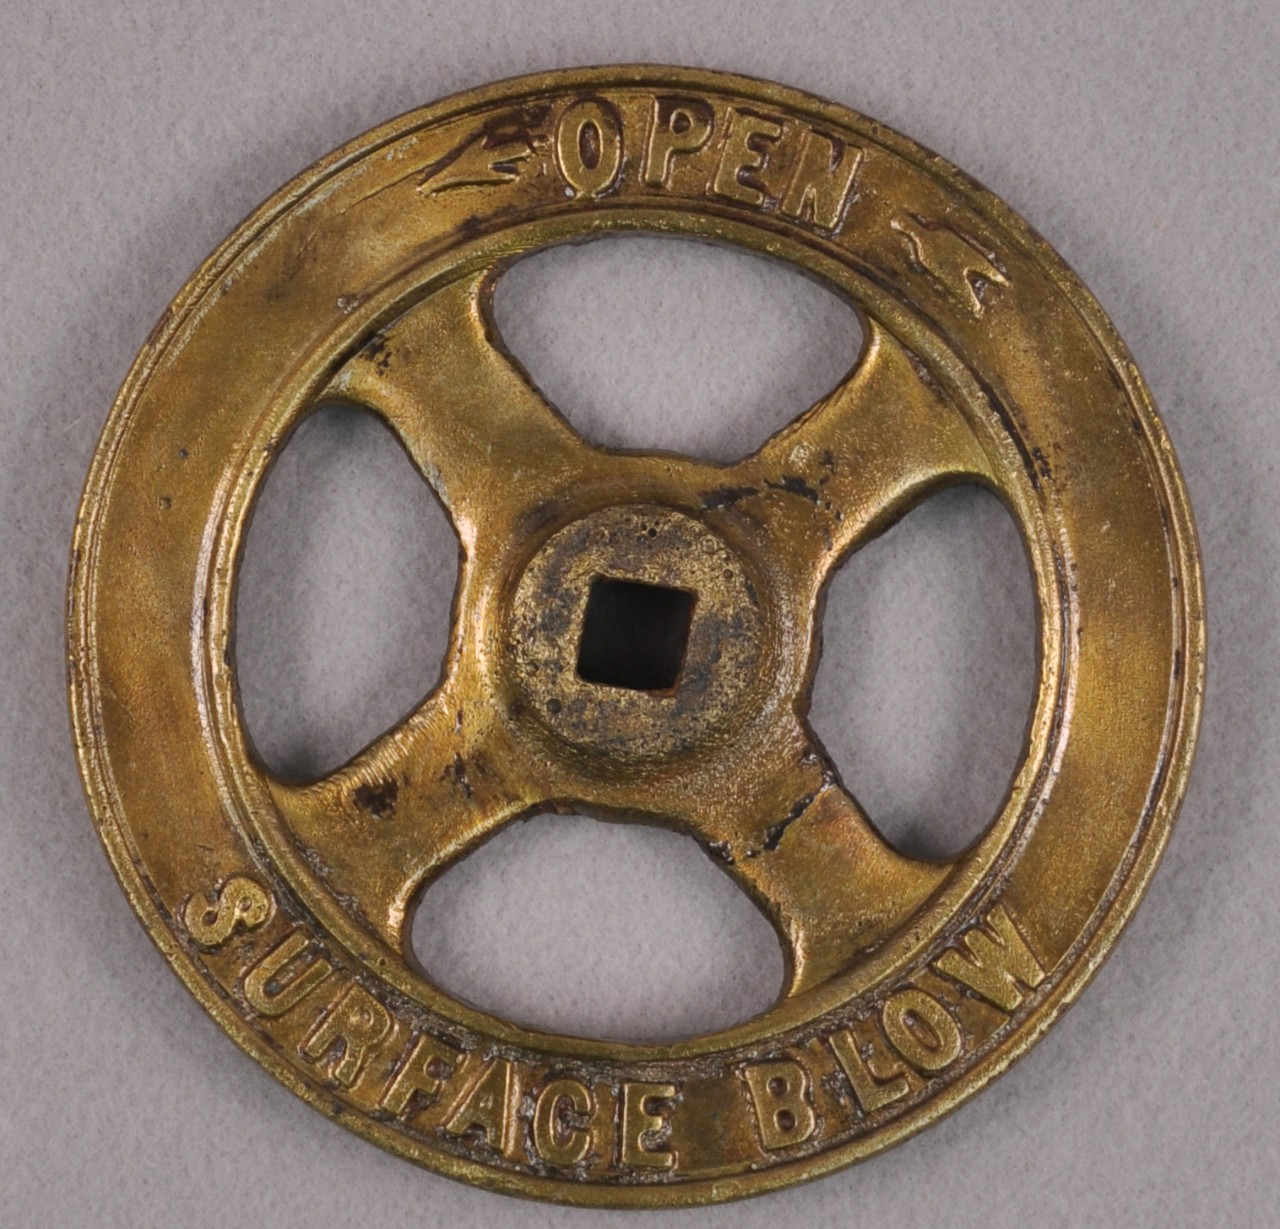 "A brass valve wheel with a raised circle in the middle. A square hole is cut in the middle of this circle.  At the top of the valve are the words ""OPEN"" with an arrow point left and the words at the bottom are the words ""SURFACE BELOW""."